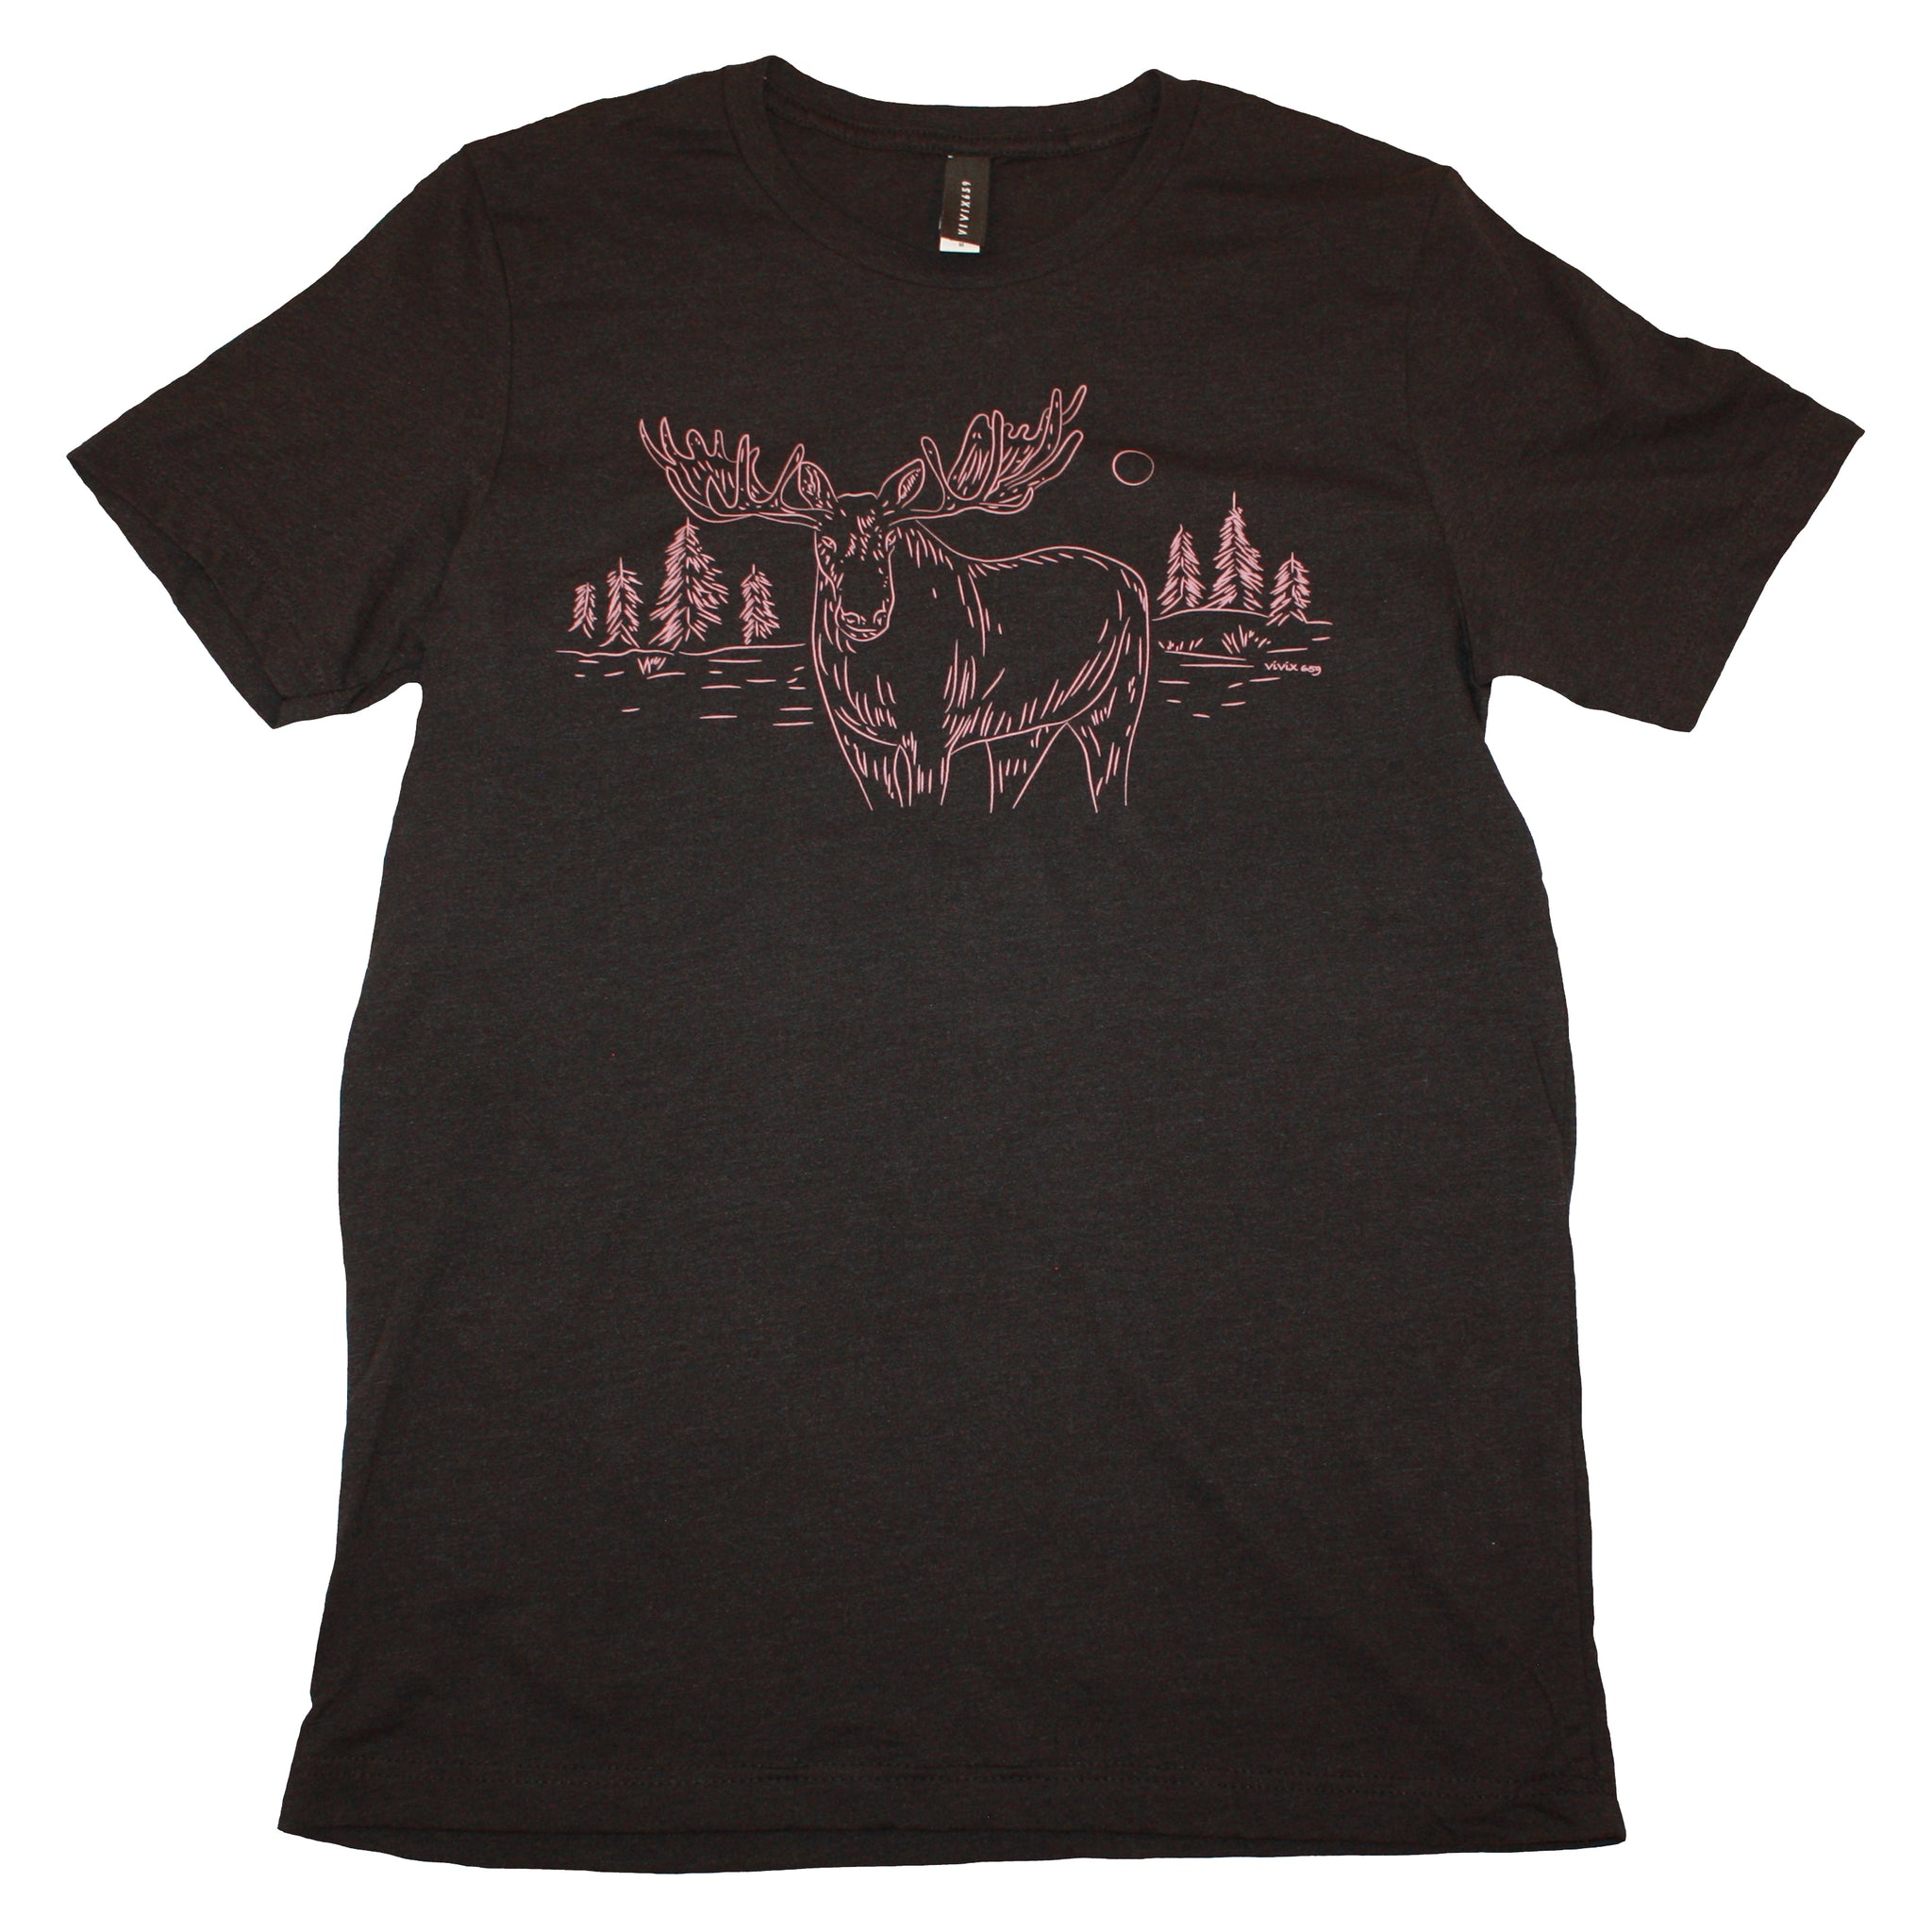 Mountains and animals t shirt